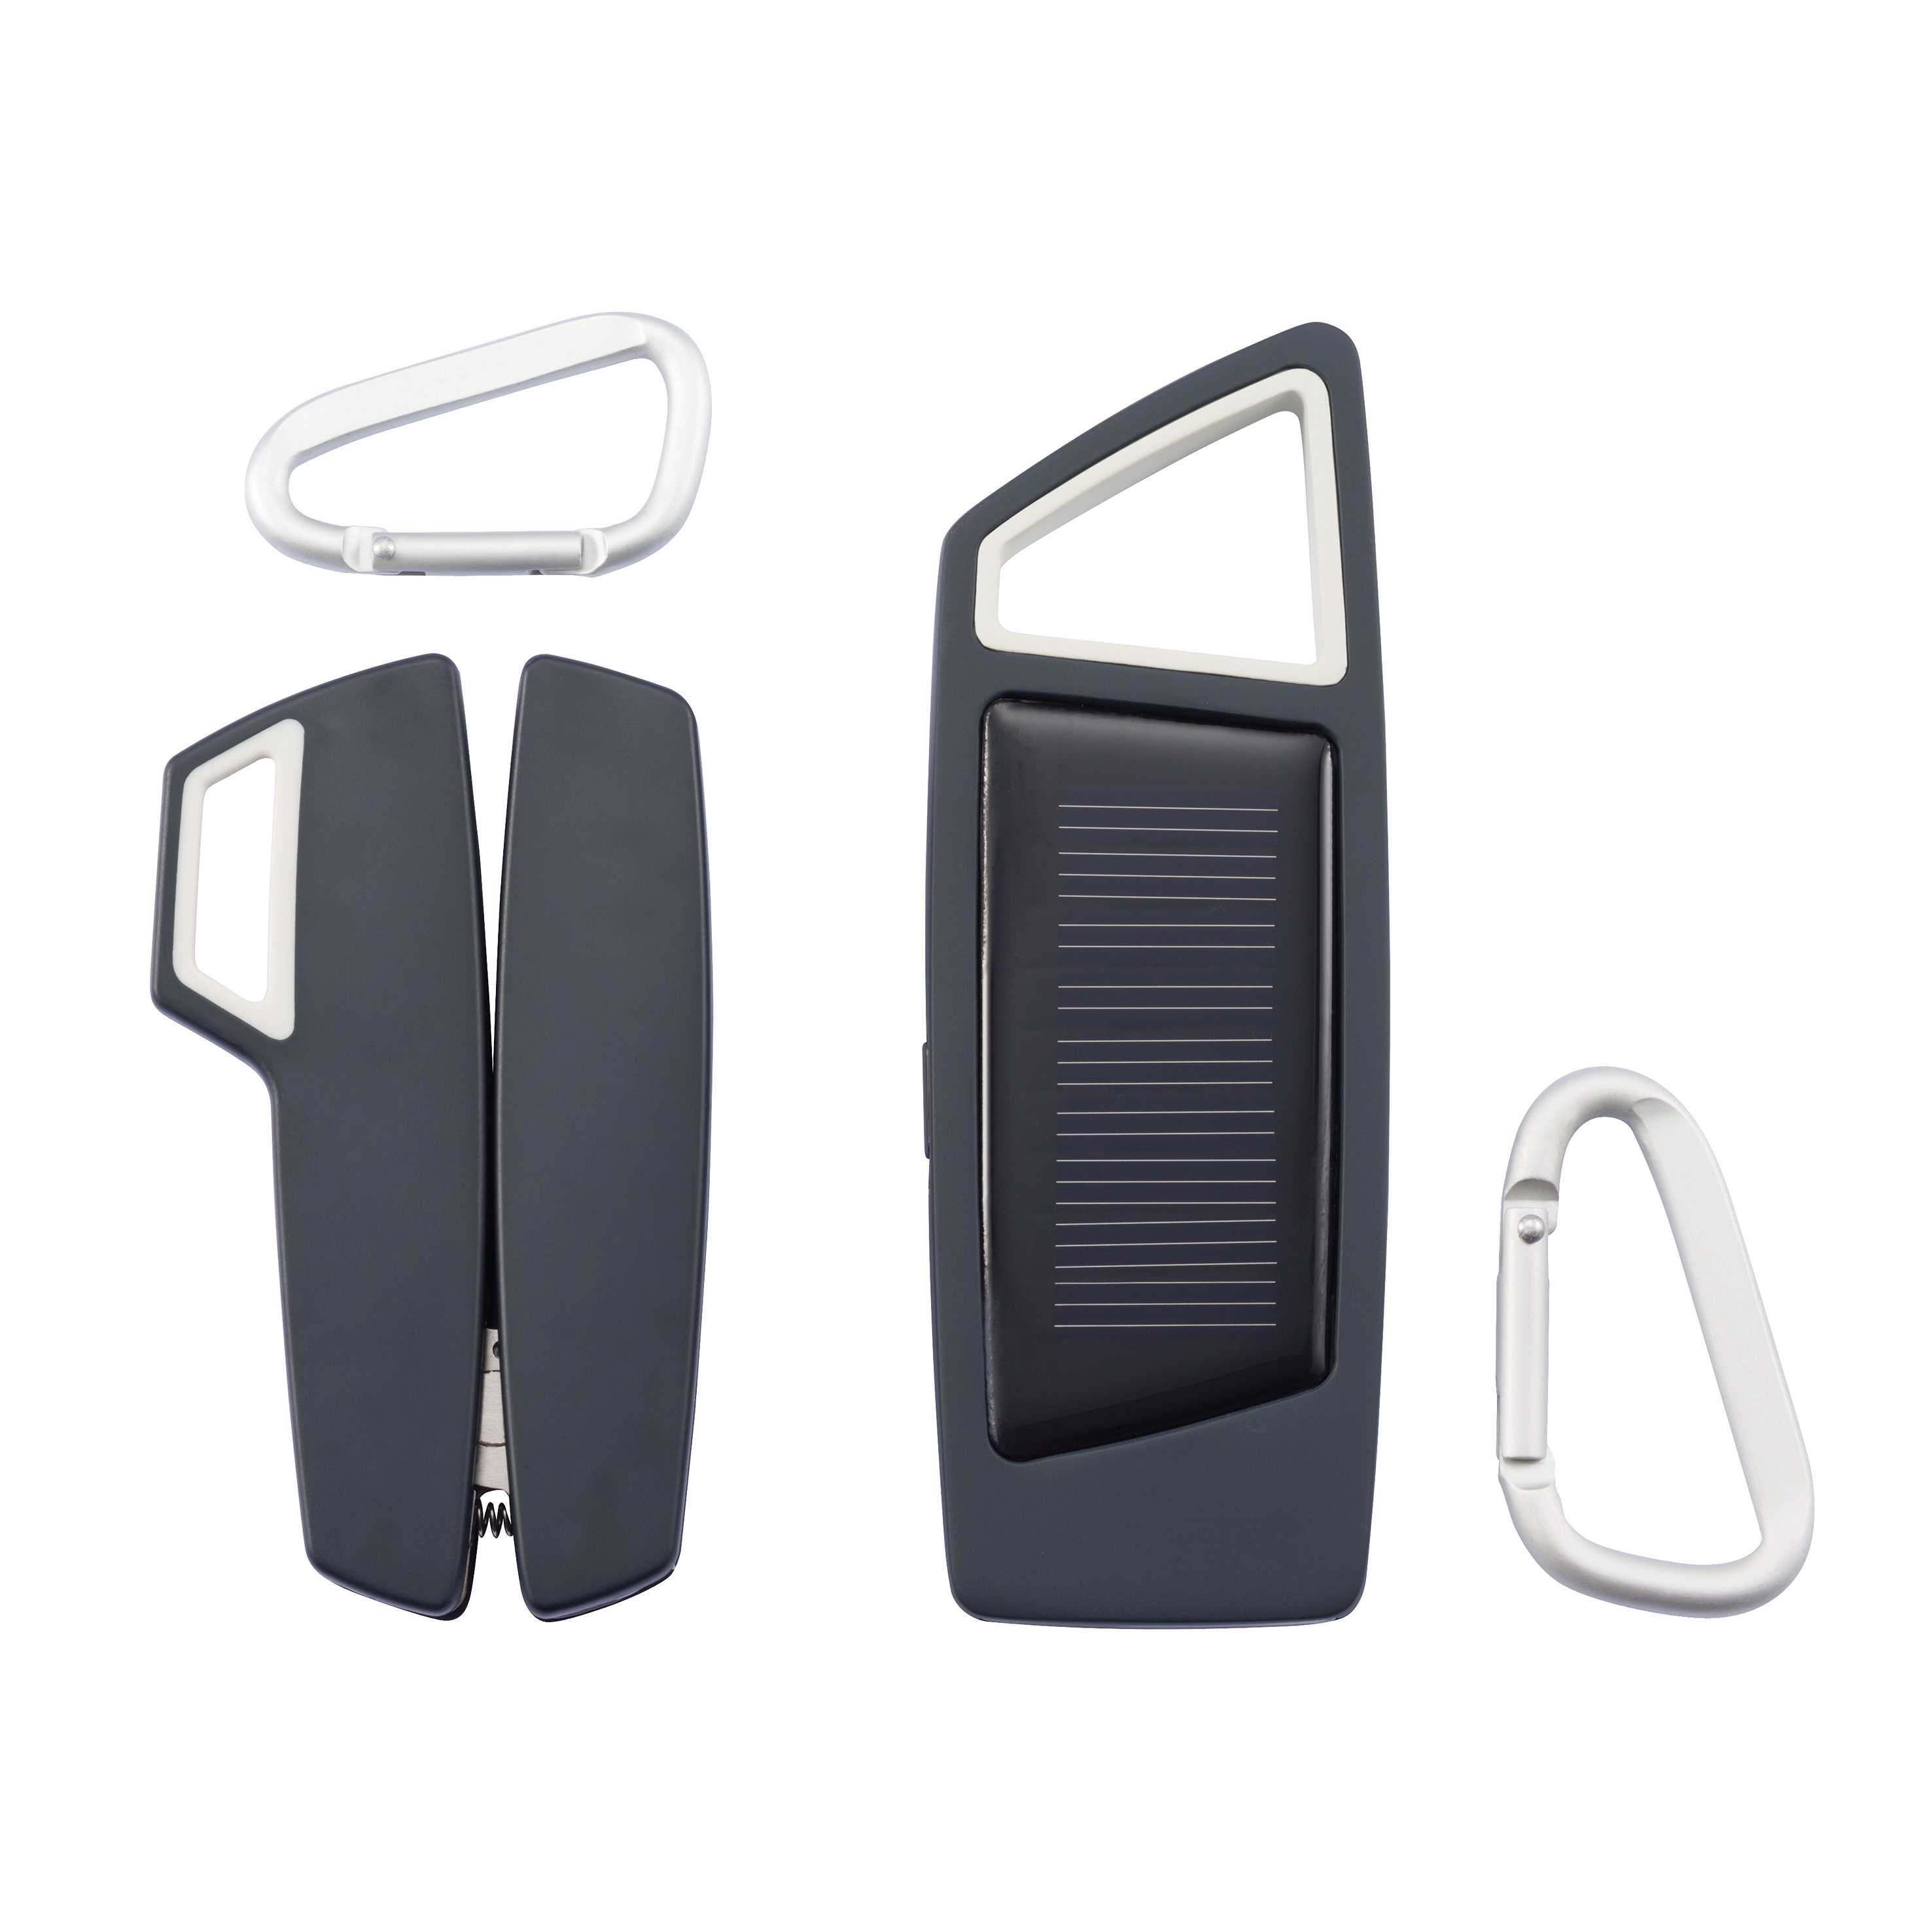 Tovo set solar torch & multitool